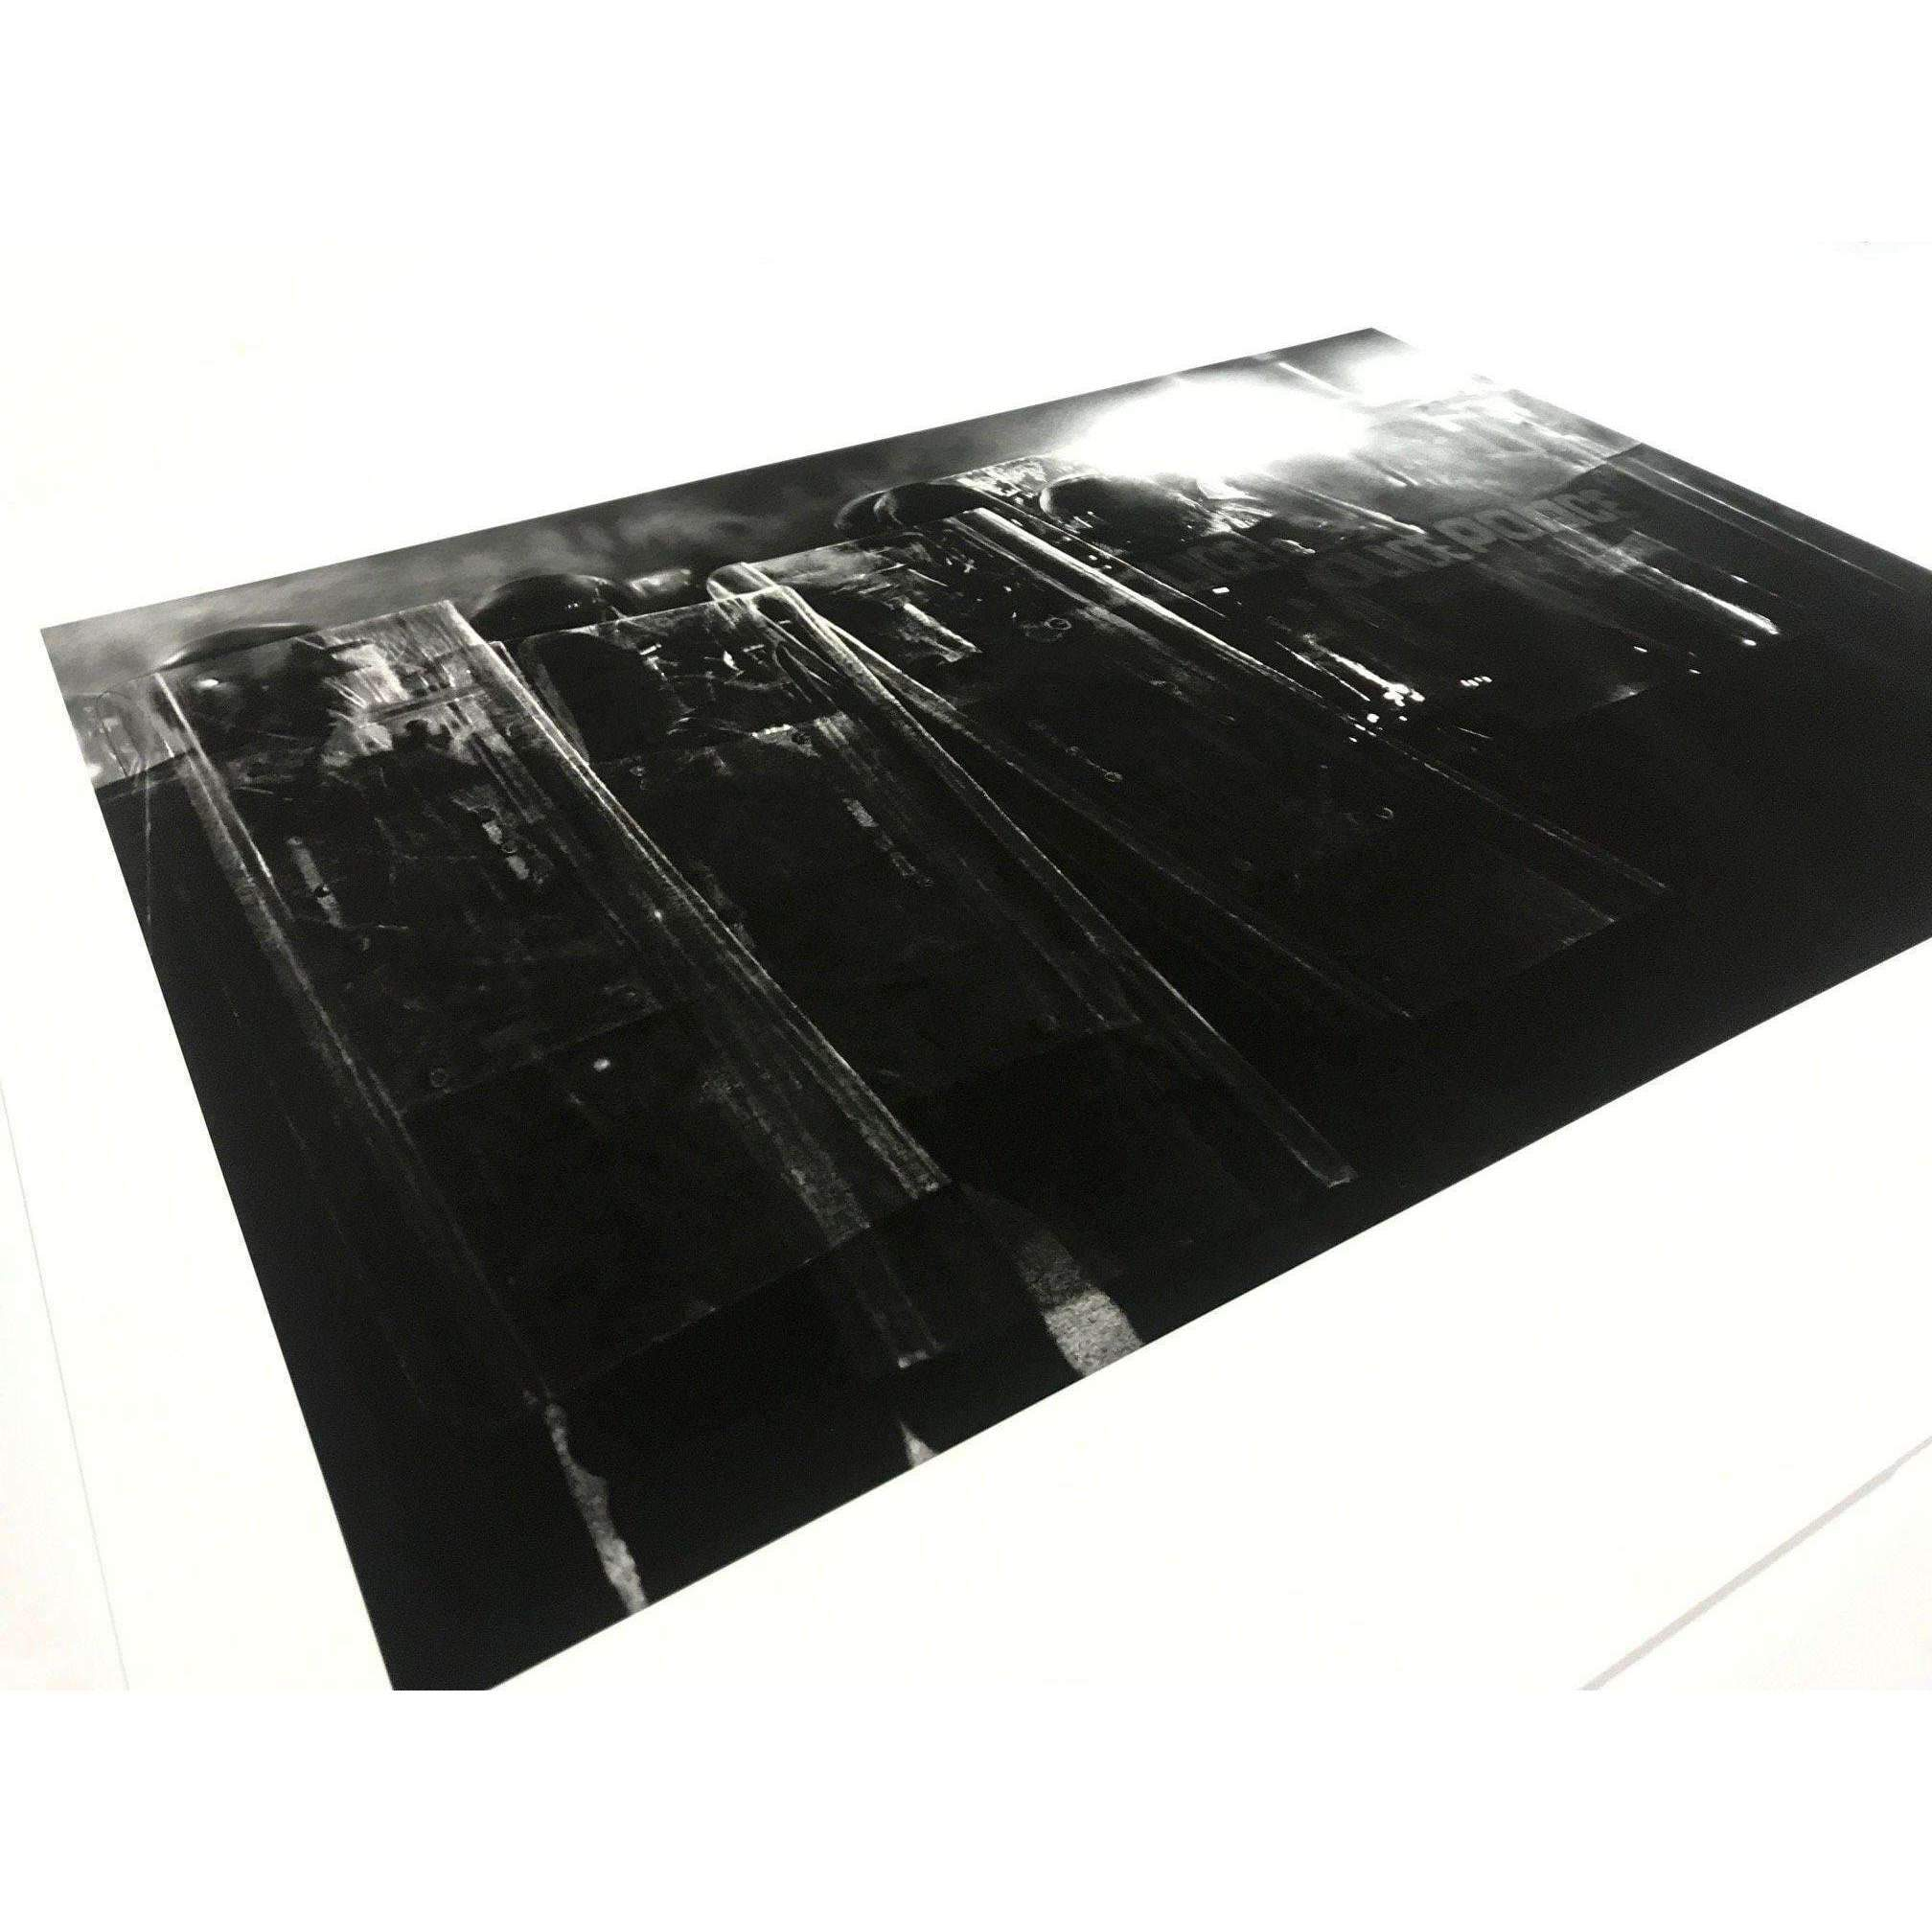 Robert Longo, Untitled (Riot Cops), 2017 | Lougher Contemporary